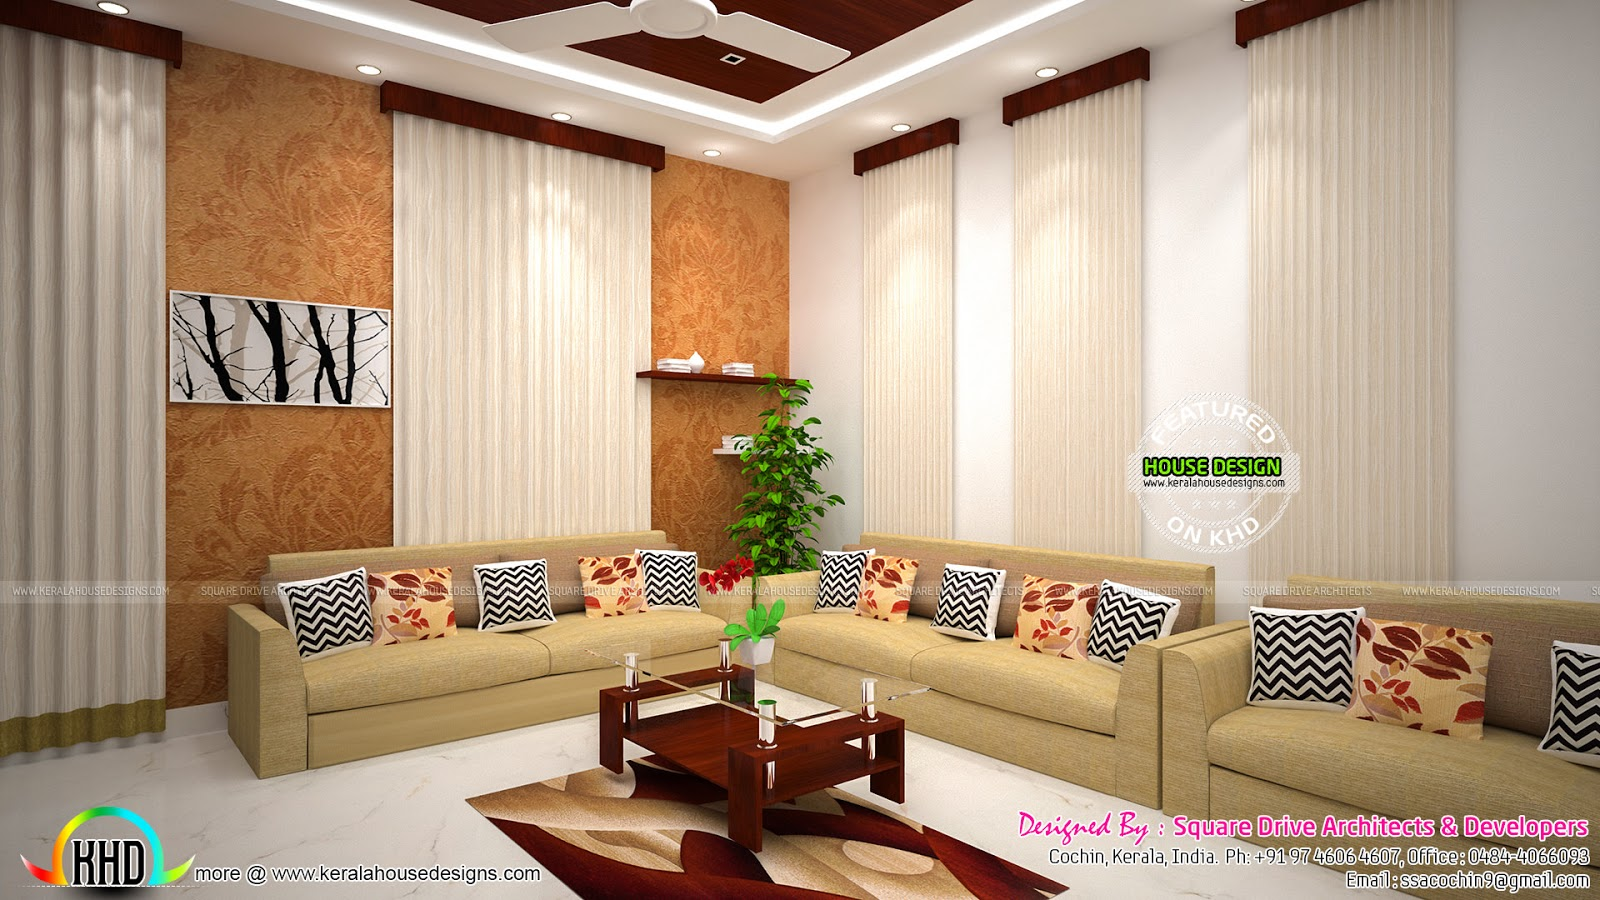 Foyer living dining room interiors kerala home design for Kerala house living room interior design